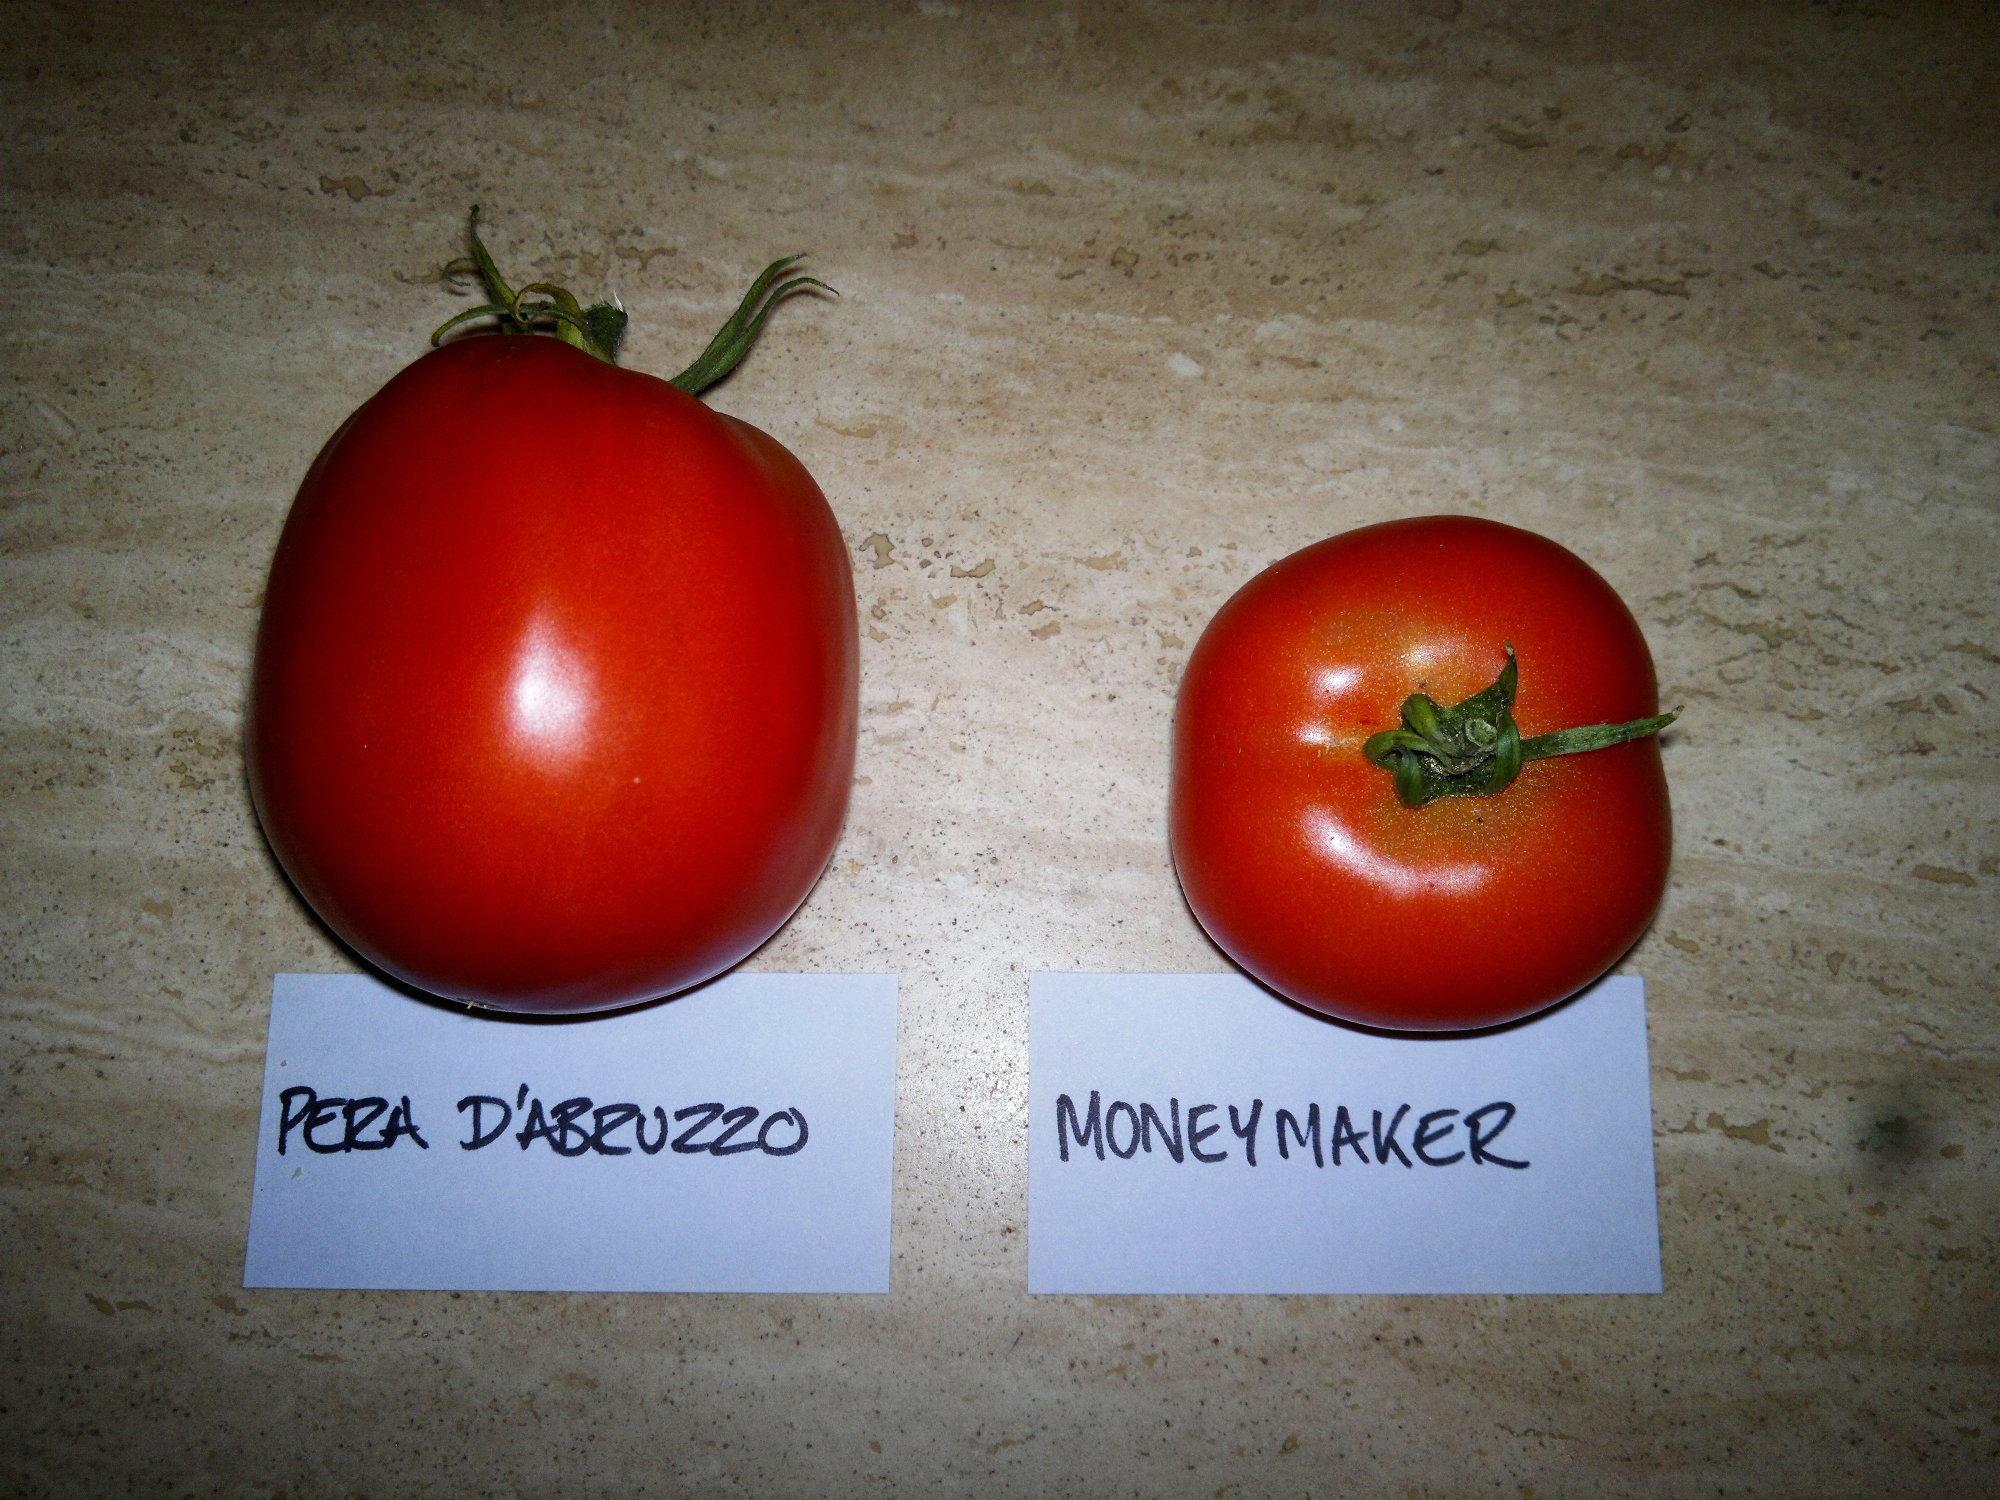 The two late ripening tomatoes